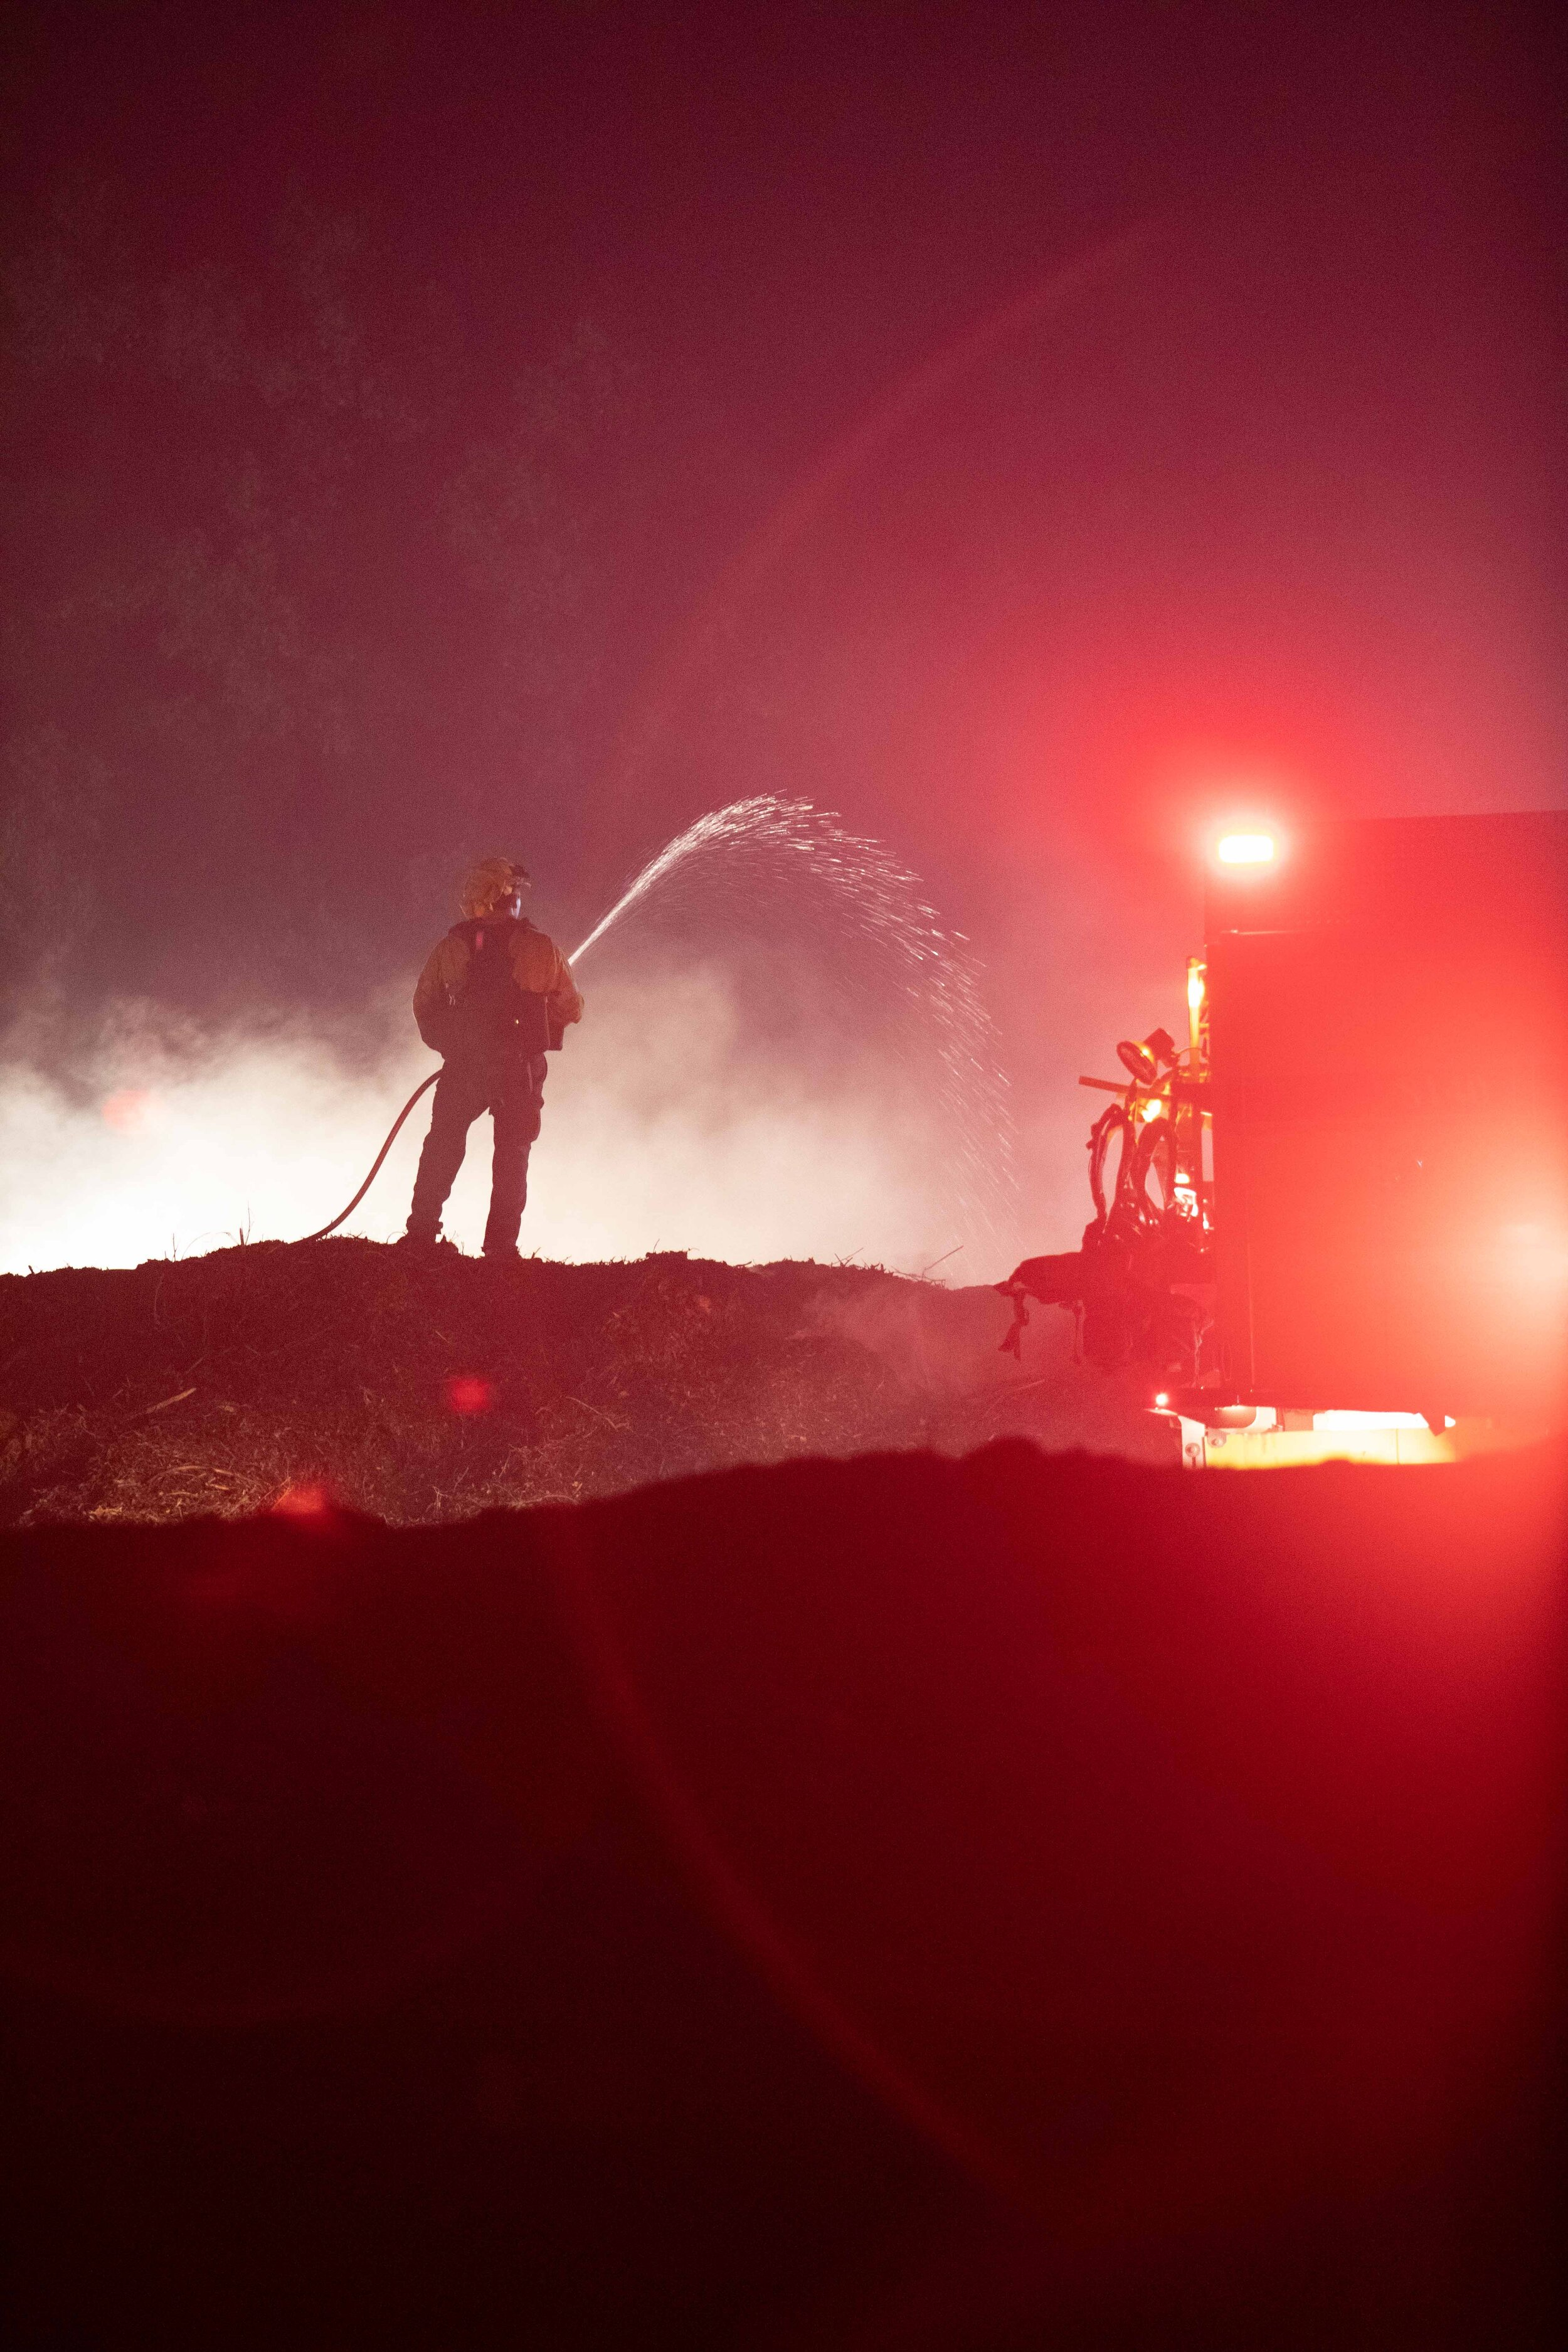 A firefighter works to extinguish a brush fire raging as part of the Saddleridge fire on the evening of Saturday, Oct. 12, 2019 beside the 5 freeway, just north of Sylmar, Calif. in the Newhall Pass. (Joshua Nicoloro/The Corsair)